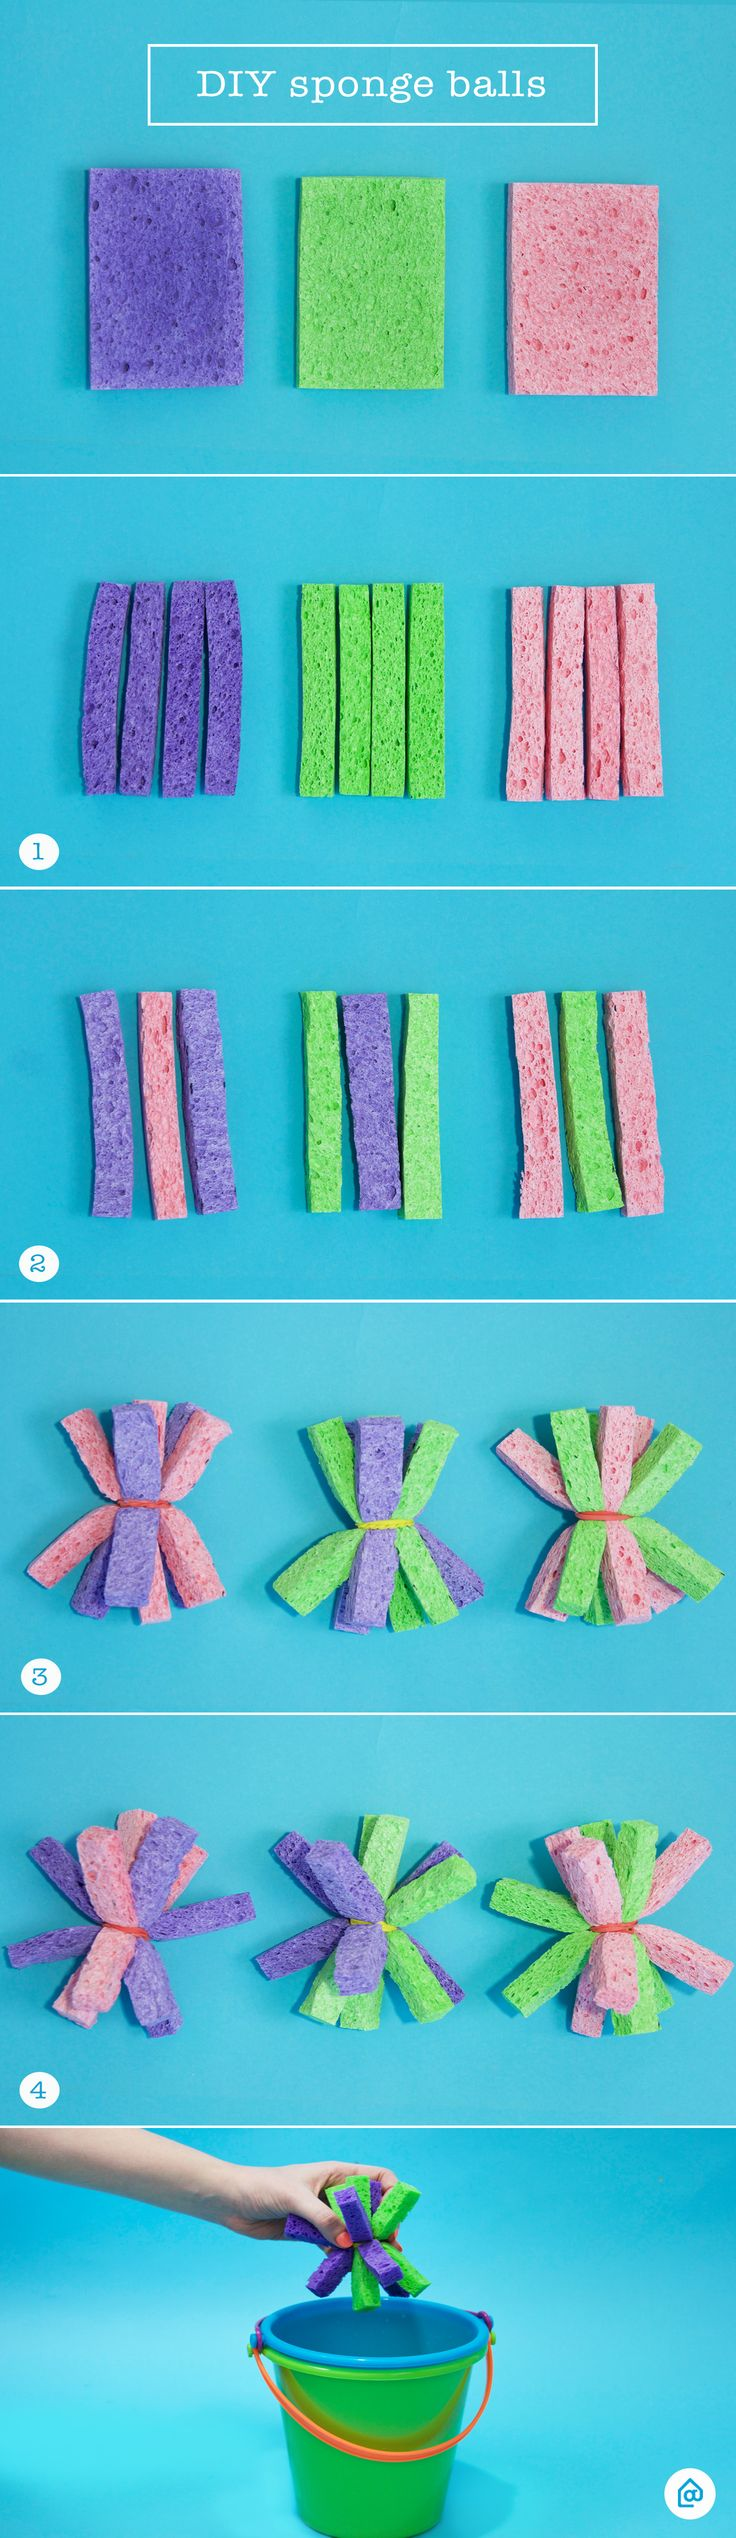 """Looking for a cheap and easy summer activity for the kids? These DIY sponge balls are the perfect alternative to water balloons – less water and less mess! Just follow our 5 simple steps: 1) Use a marker and ruler to cut your sponge into 1"""" strips 2) Gather 9 strips of sponge using a mix of colors 3) Tie the strips together with a string 4) Shift the sponge pieces around to create a ball and snip the extra string 5) Dip in a water bucket and enjoy!"""